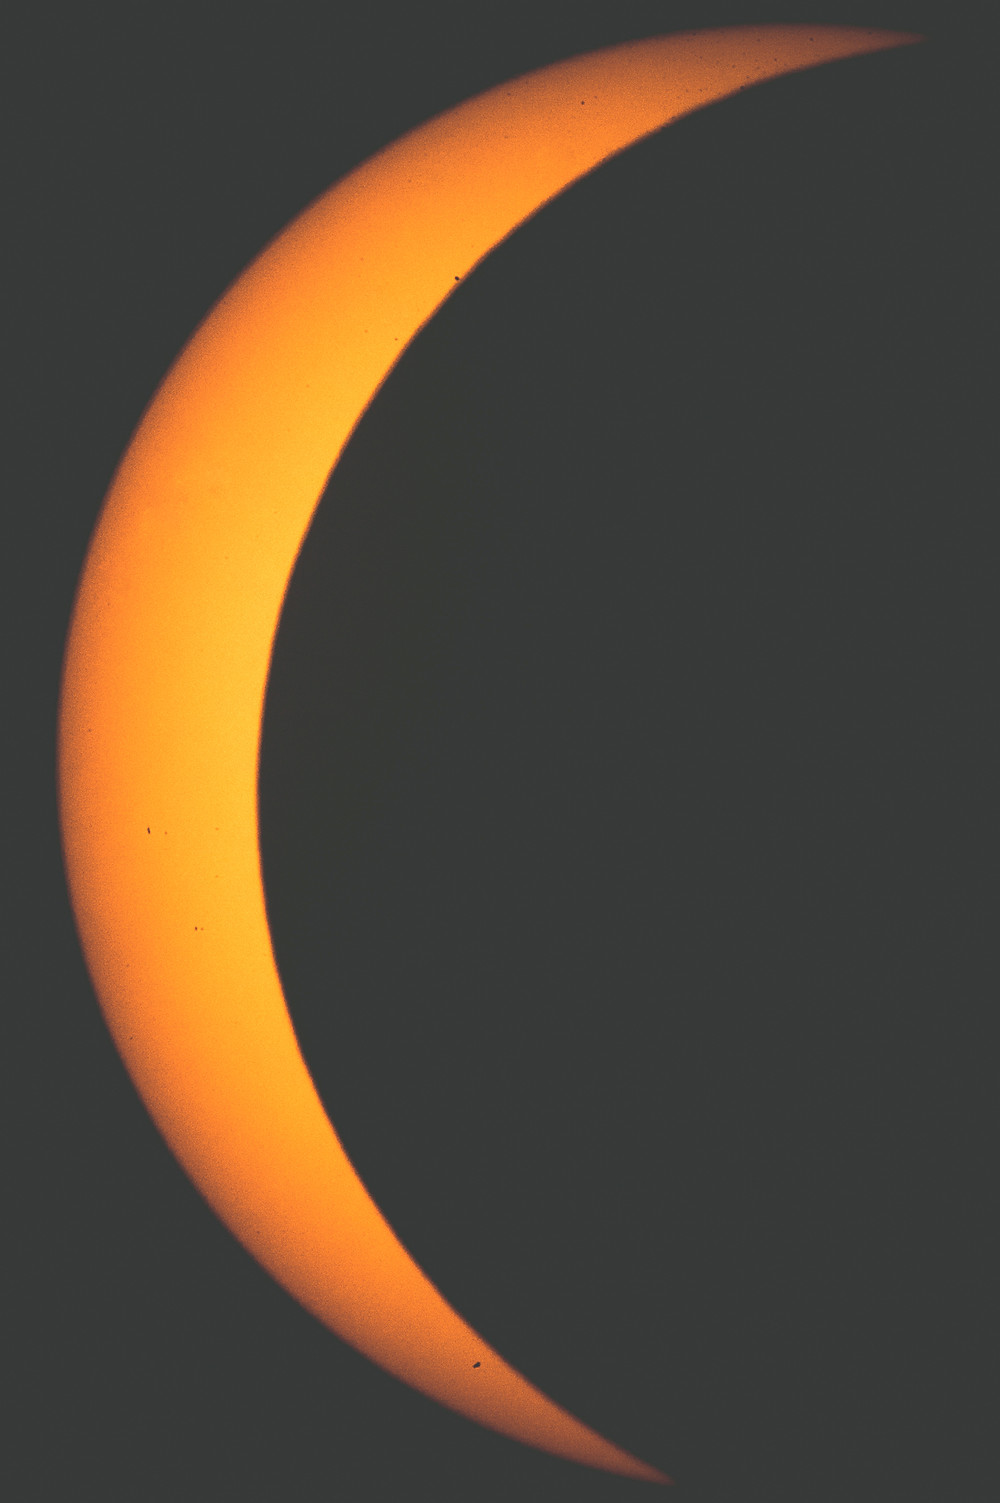 MONDAY'S near-total solar eclipse captured the imagination of most of the county, with people viewing the celestial event in numerous local places. (Photo by Bill Caine)